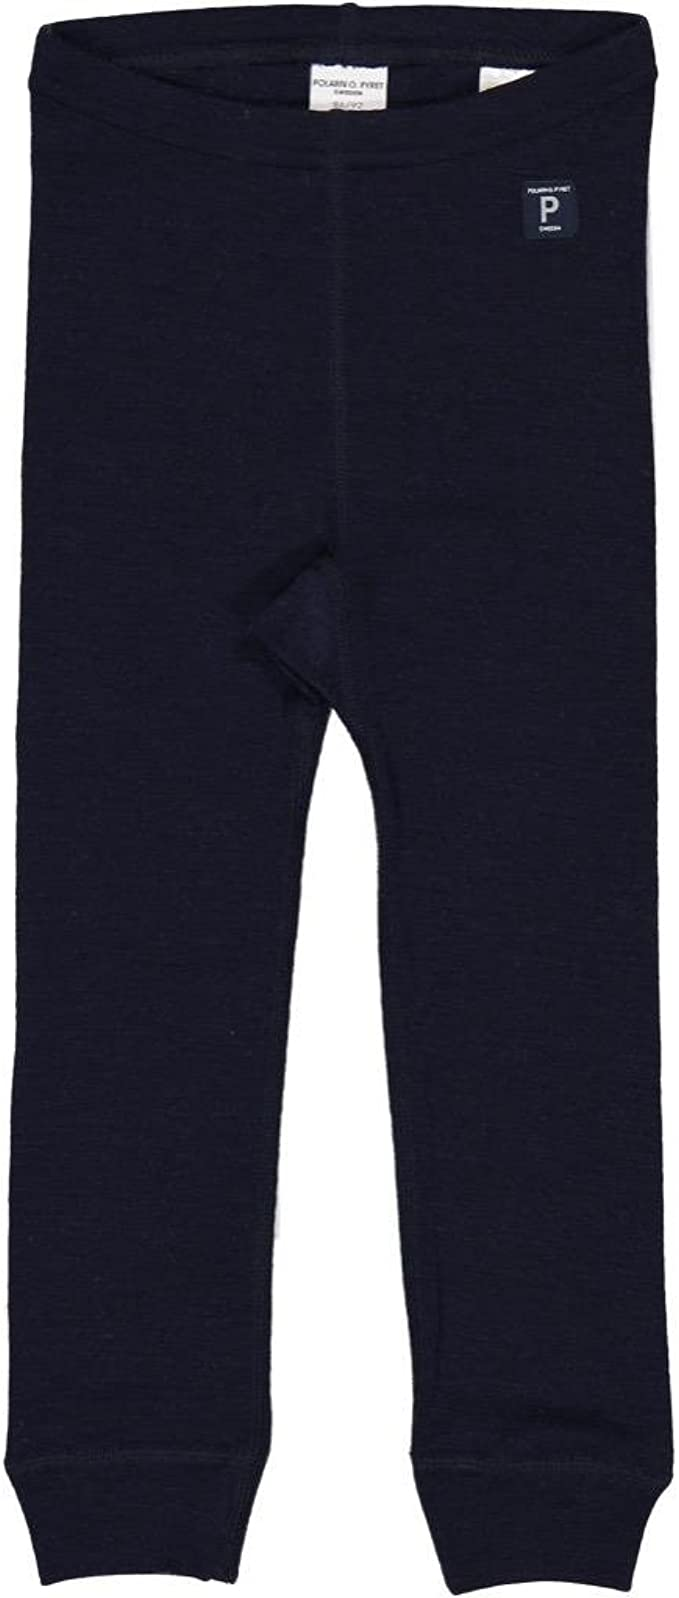 Newborn Pyret Merino Wool Long Johns Polarn O